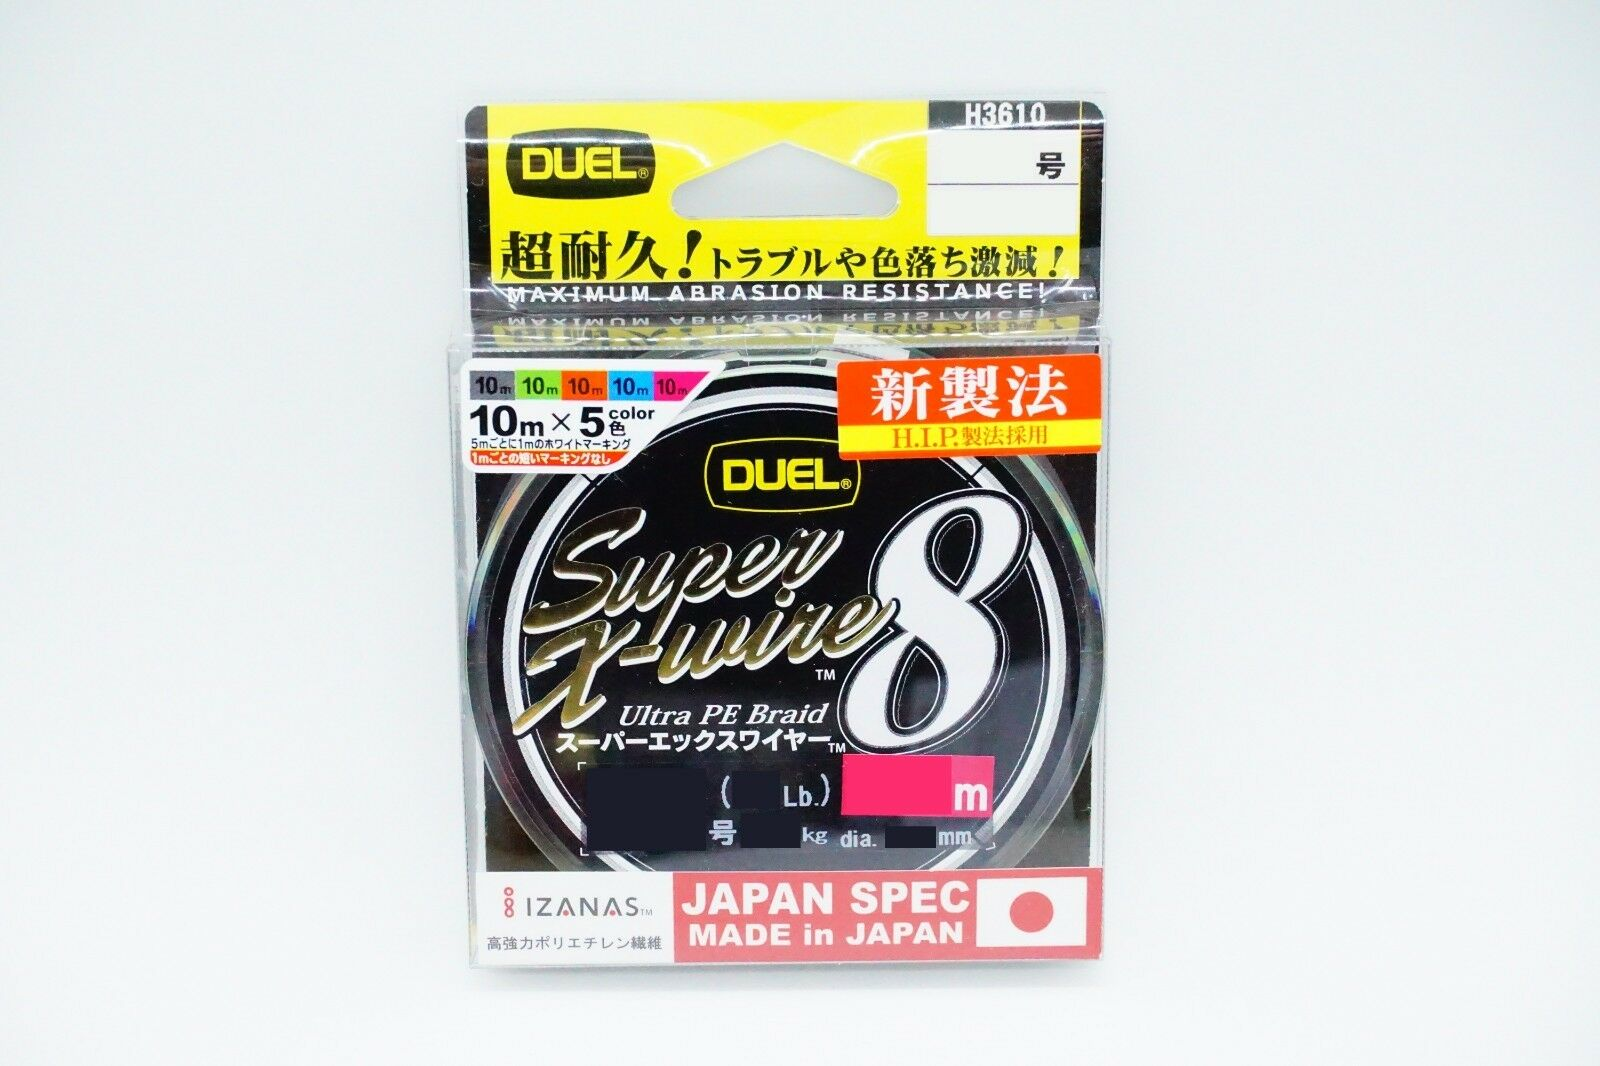 Duel Super X-wire X8 150m SILVER Ultra PE Line 8 Braided Select LB